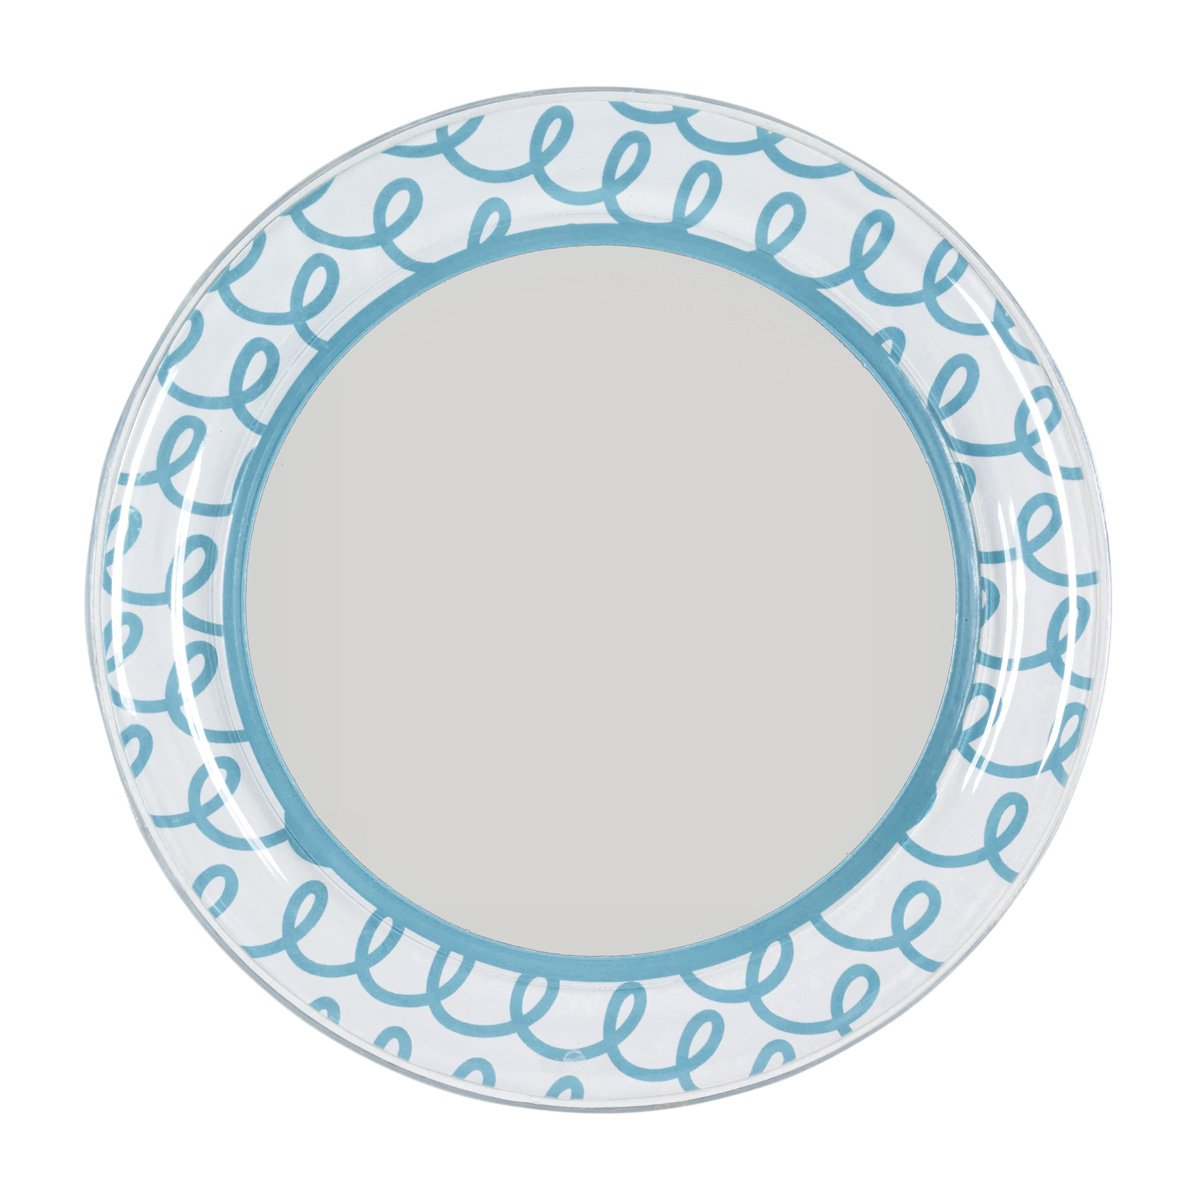 Three Cheers for Girls - Style It! Aquatic Scribbles Locker Mirror